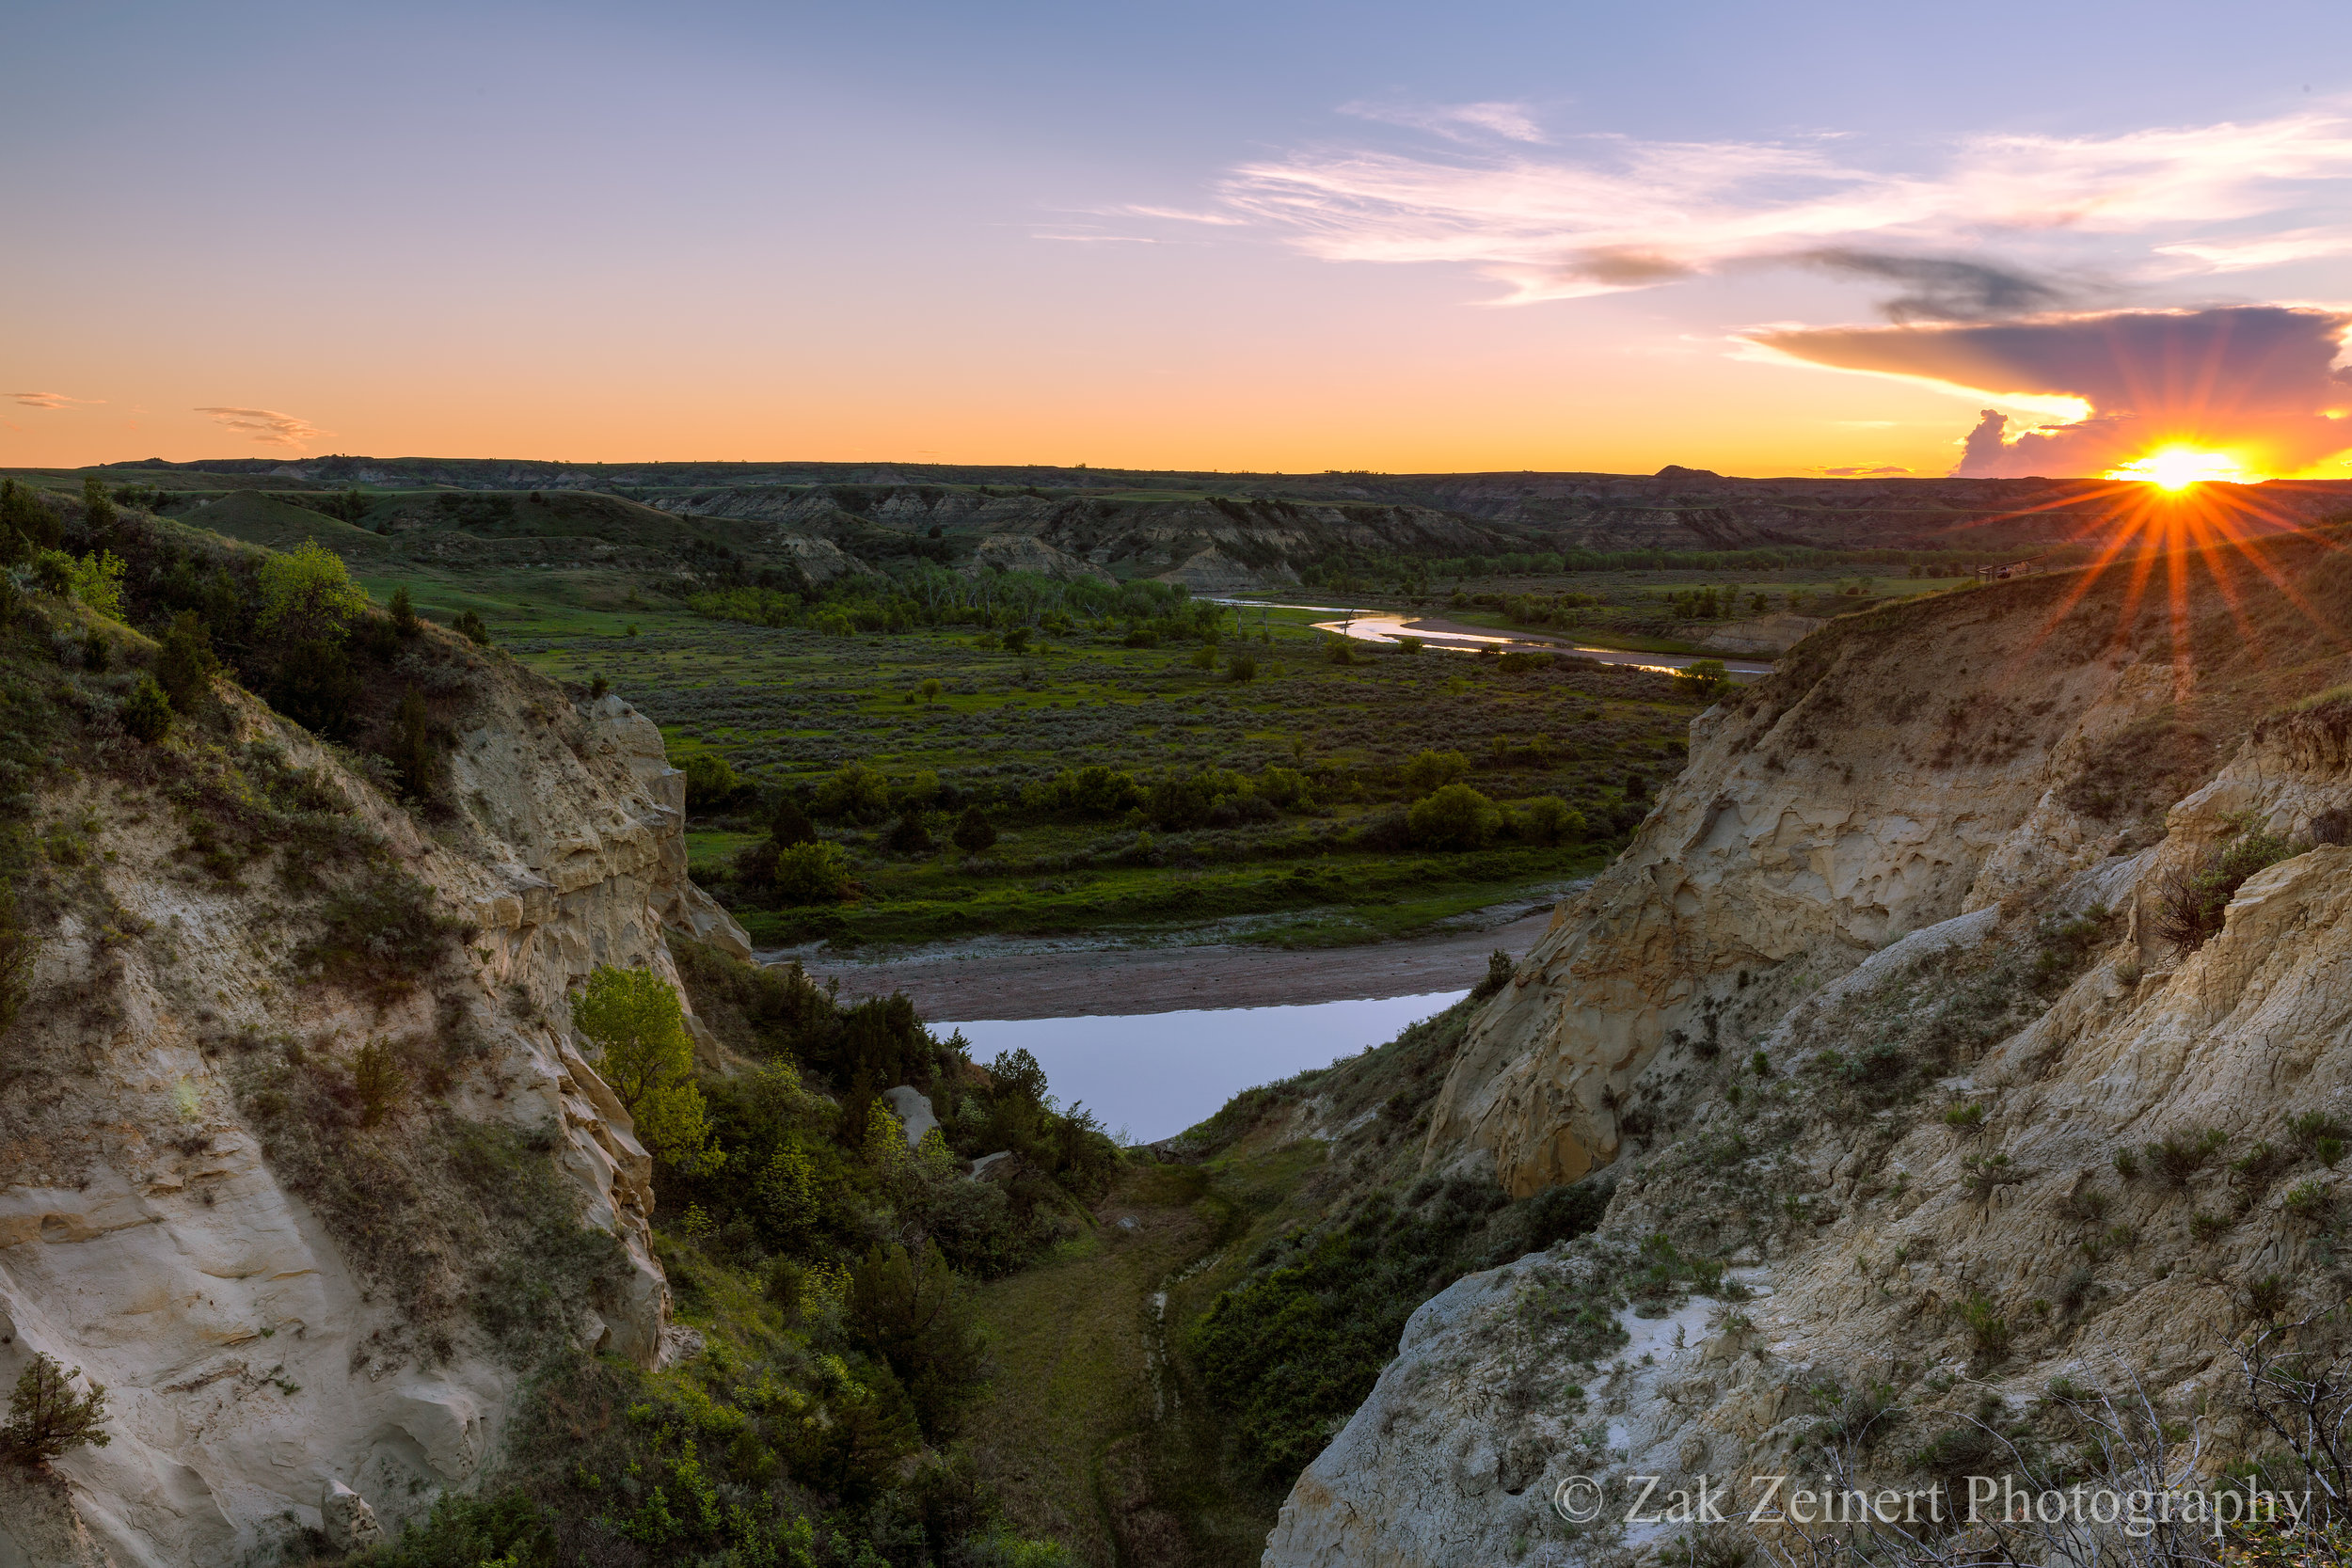 The sun sets over the Little Missouri River at Wind Canyon Overlook